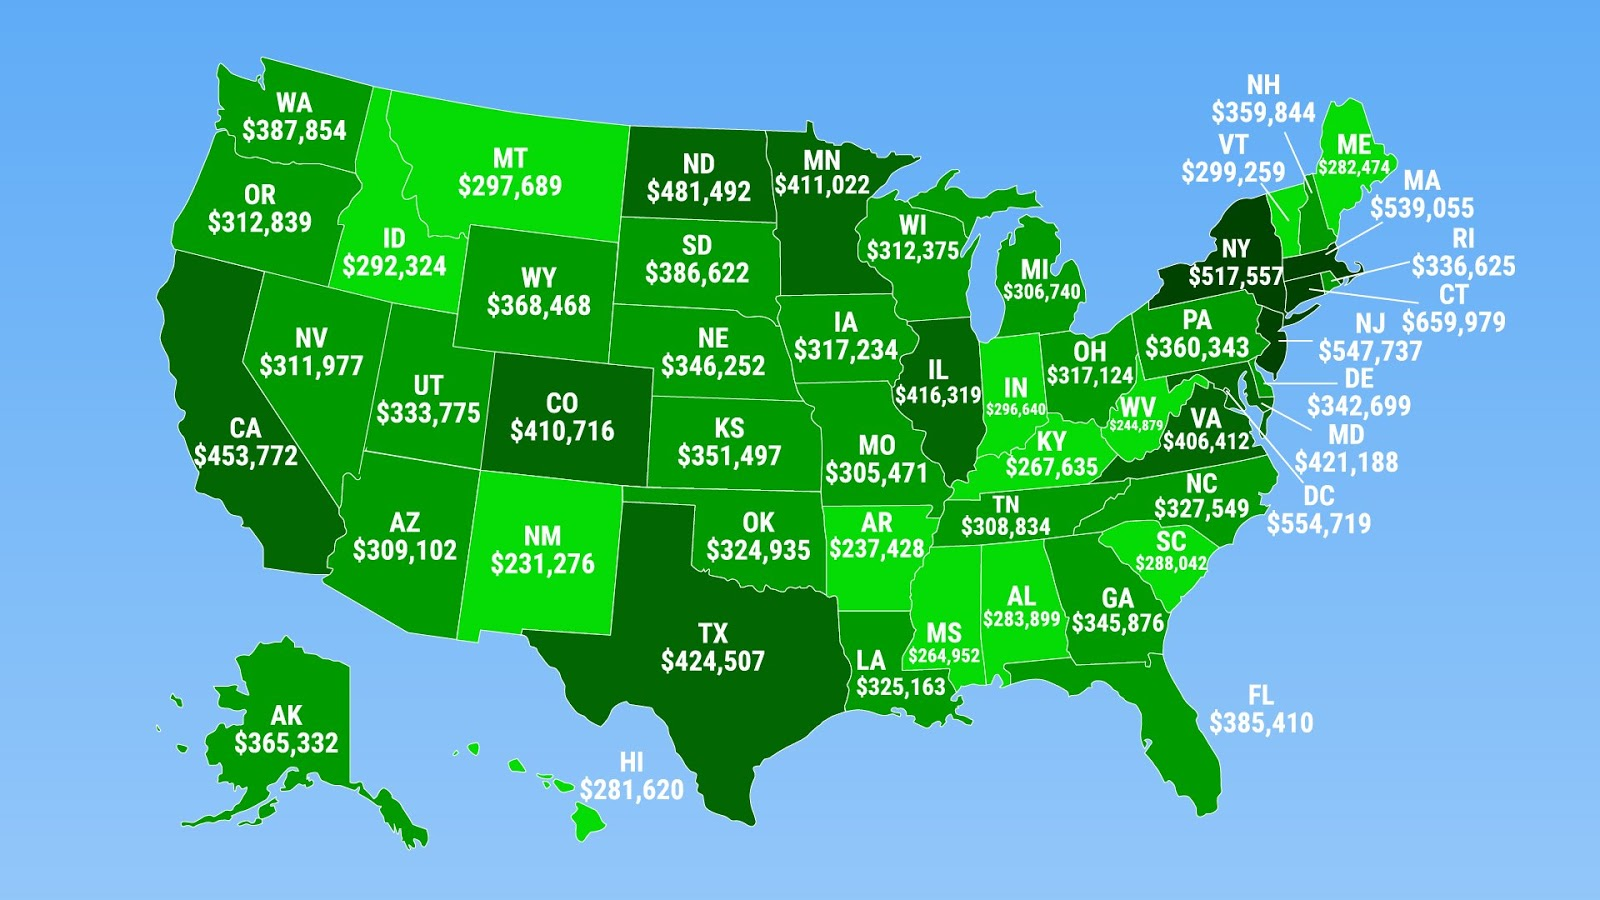 How much you need to earn to be in the top 1% of every U.S. state?